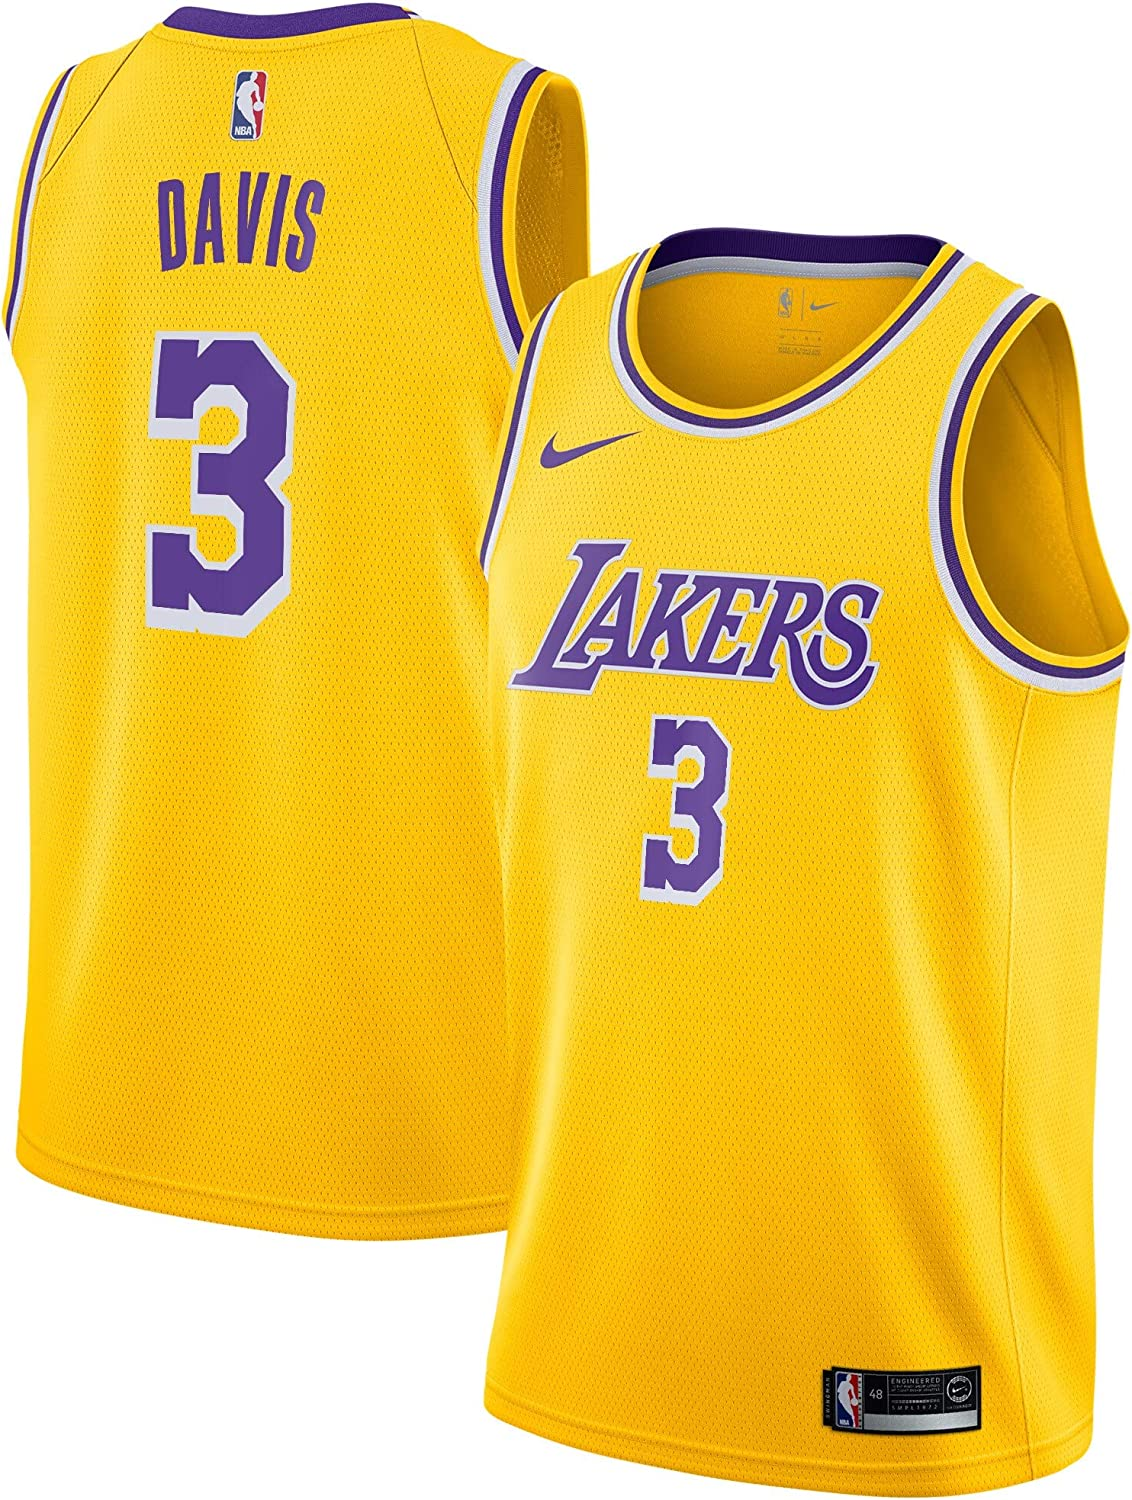 Anthony Davis Lakers Jersey Number Online Store, UP TO 55% OFF